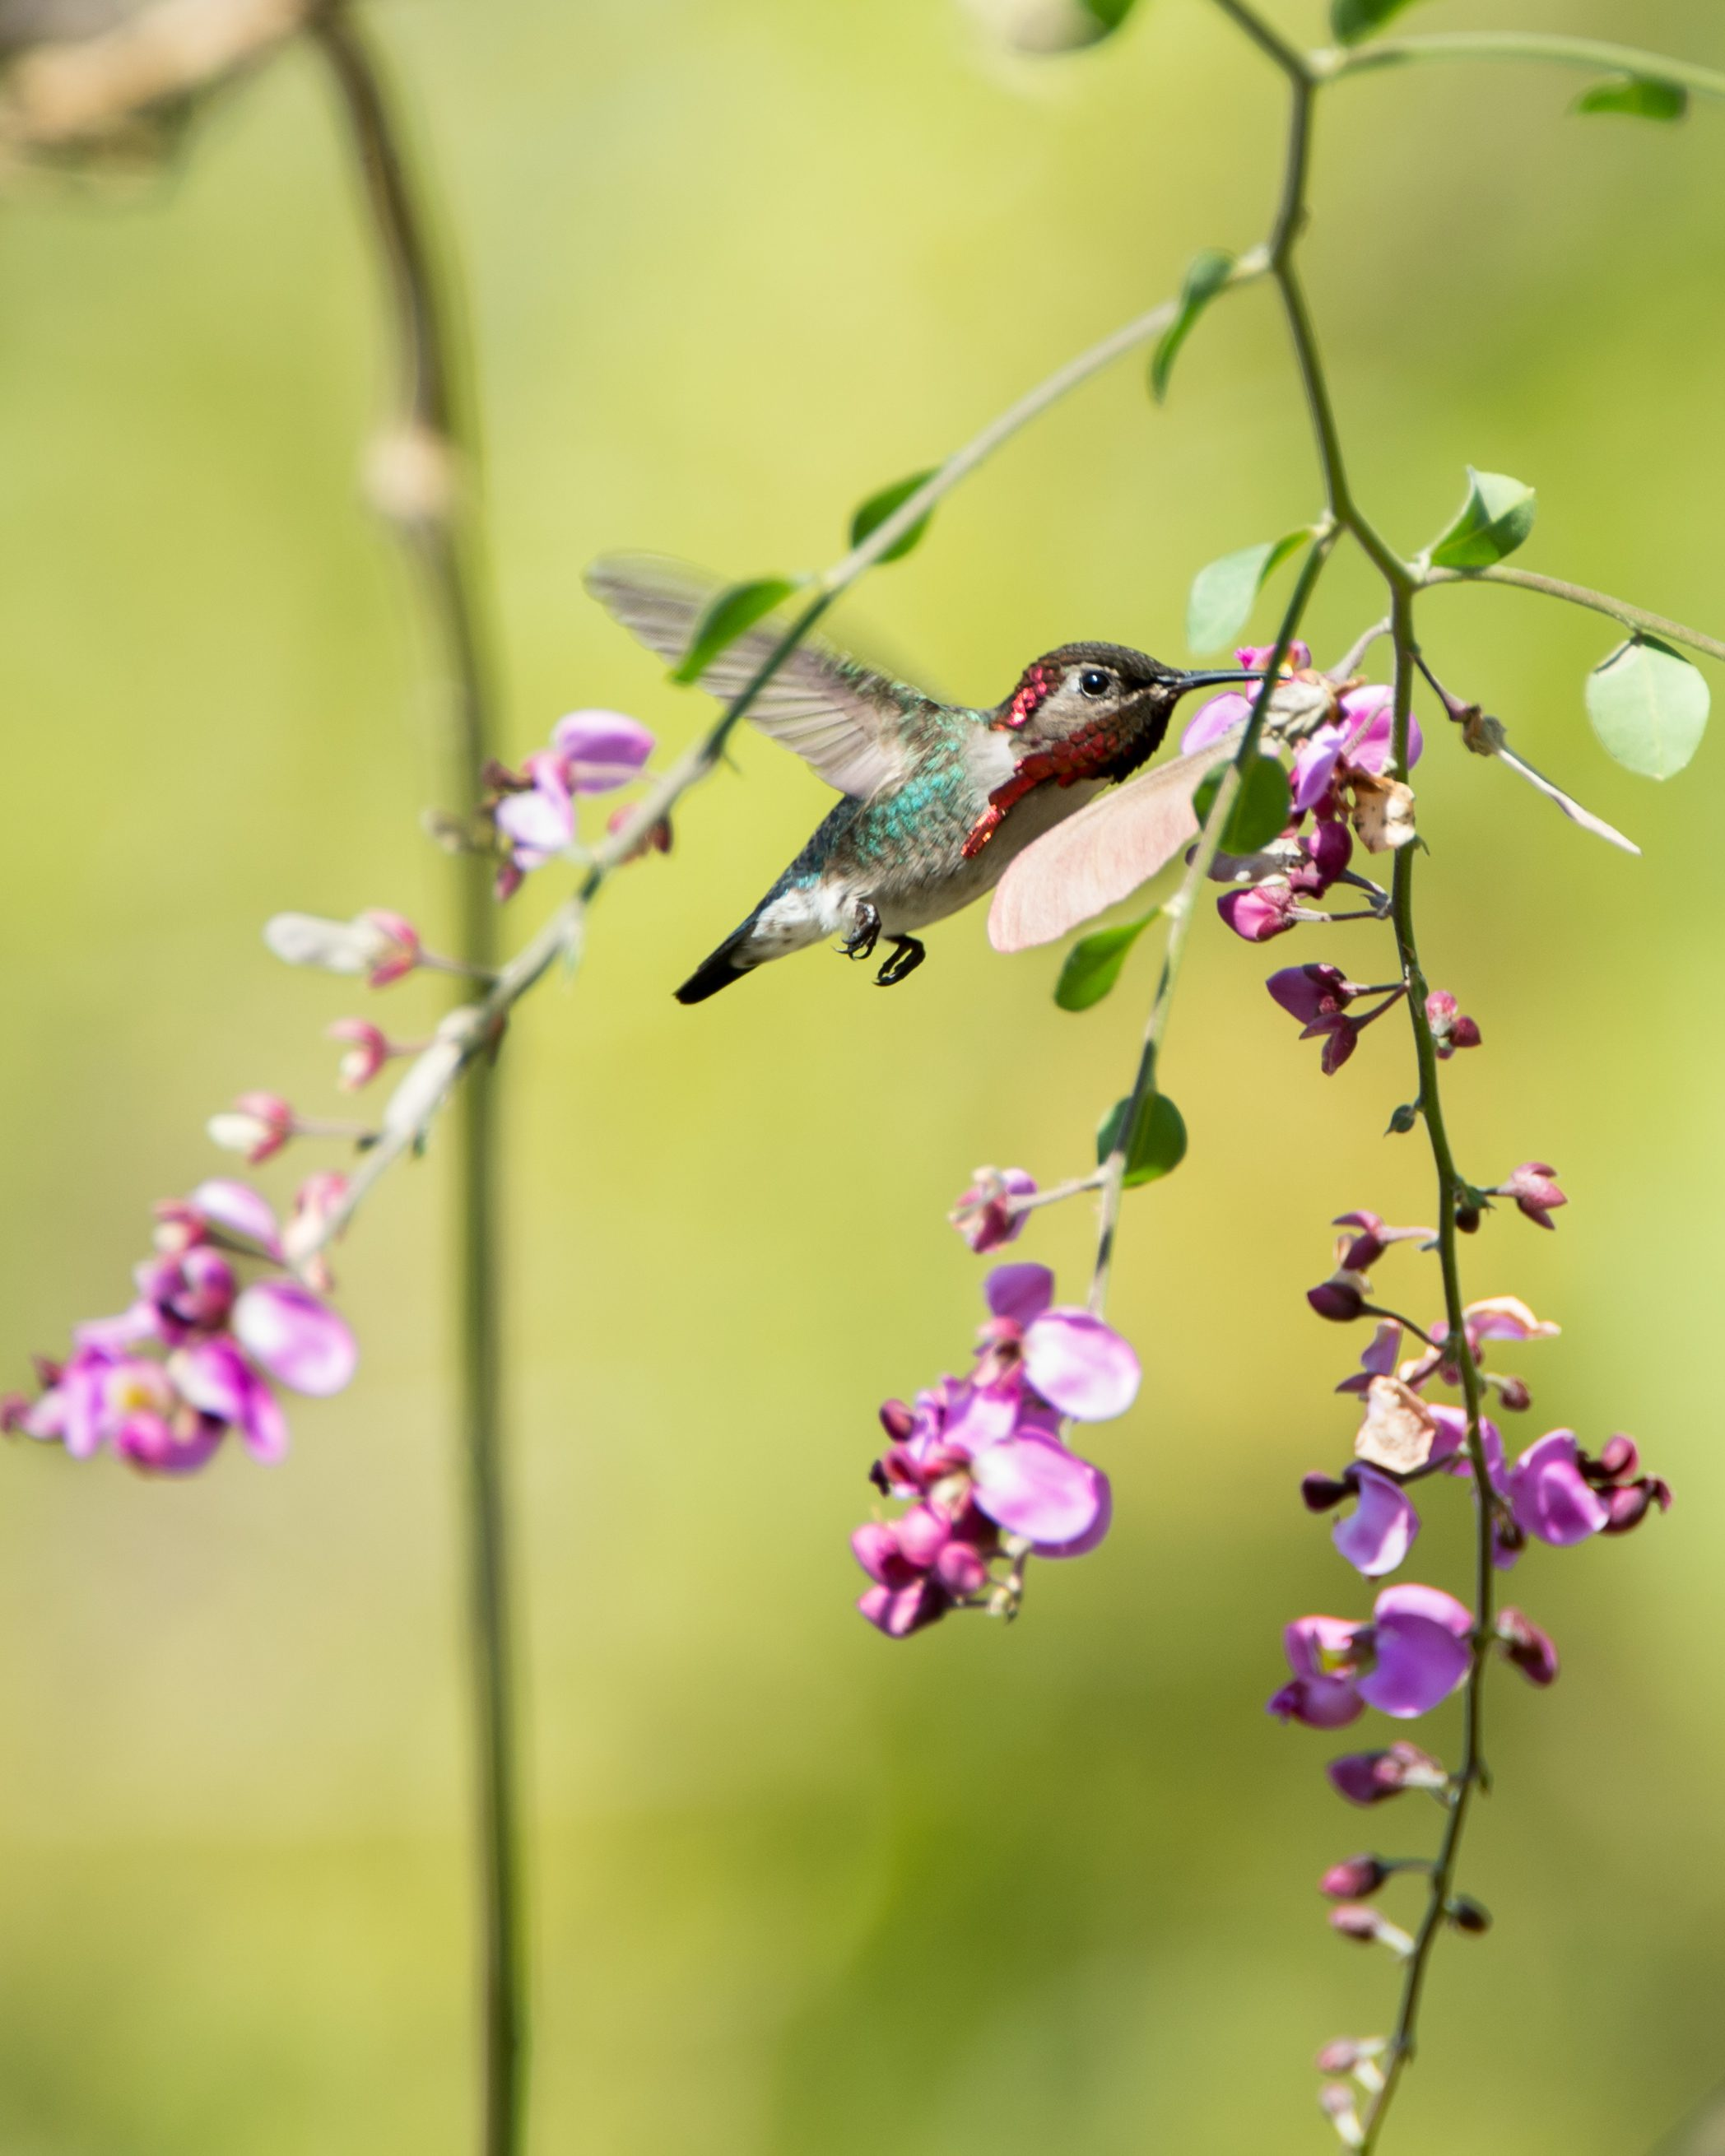 The Bee Hummingbird is considered &quot;near threatened&quot; and has a spotty distribution in Cuba, the only place it lives in the world.